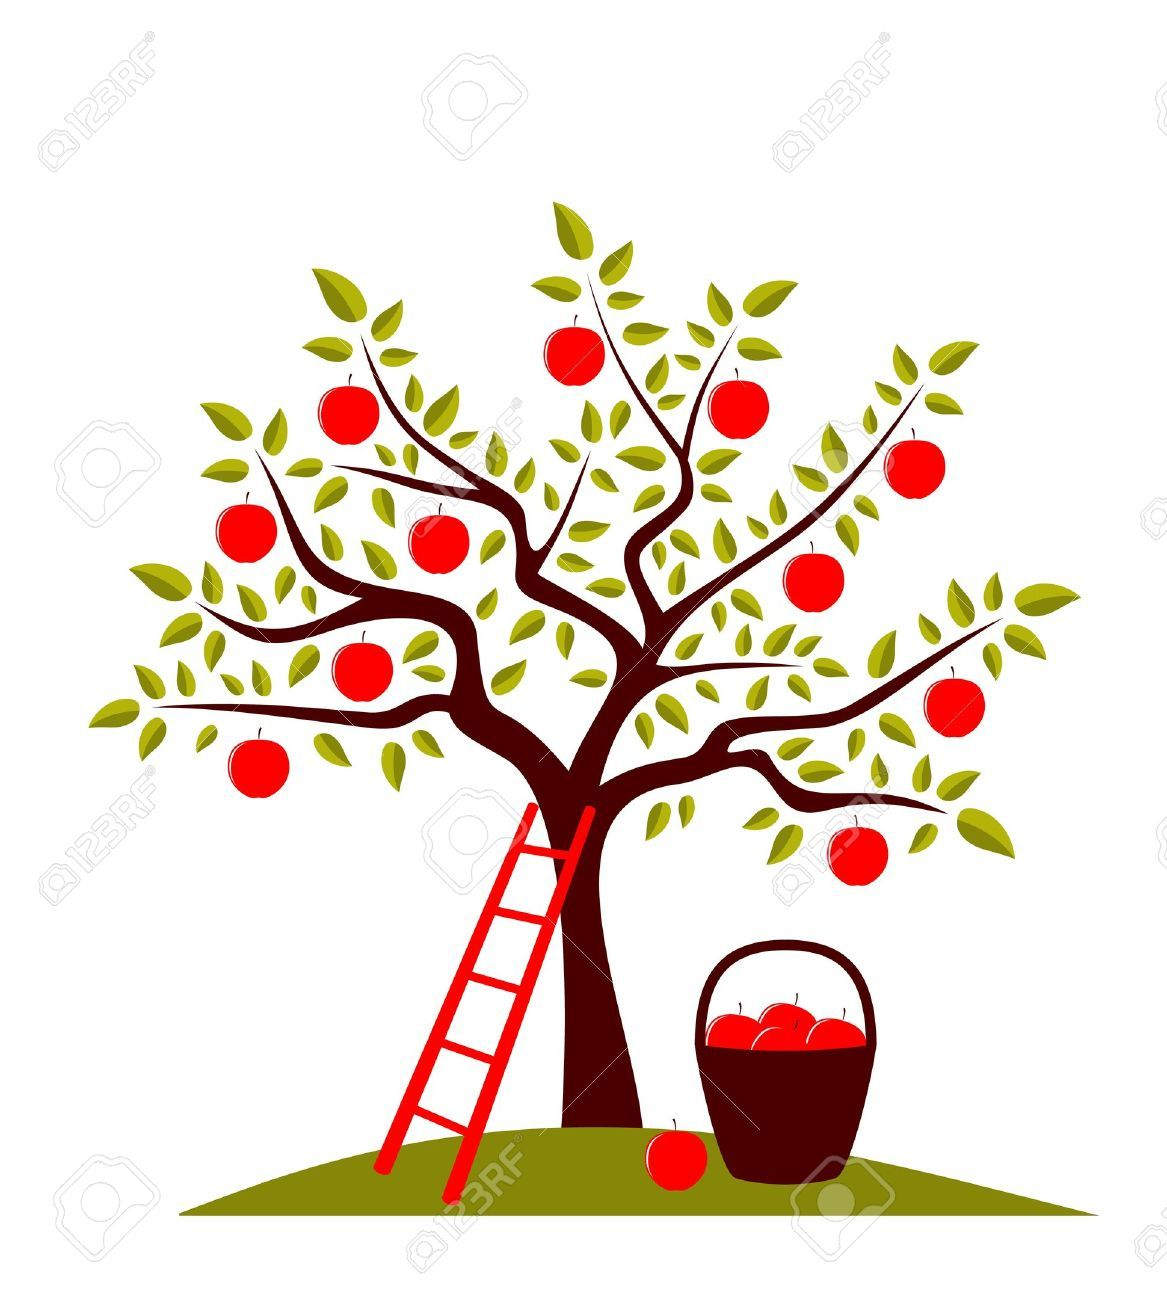 Apple Tree Images, Stock Pictures, Royalty Free Apple Tree.